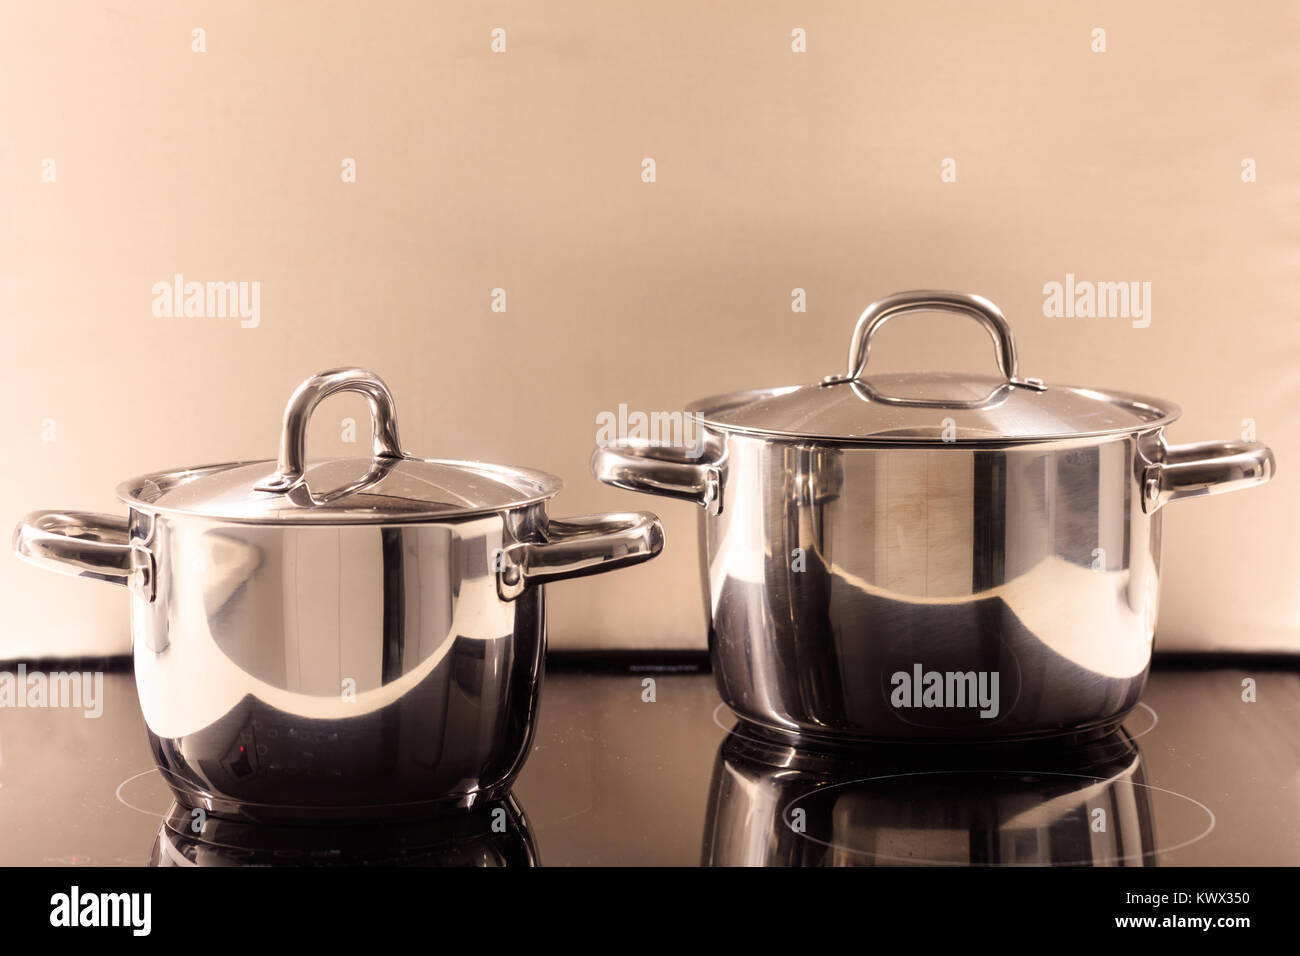 Cooking pots placed on modern electric ceramic stove. Reflections, closeup, details. - Stock Image